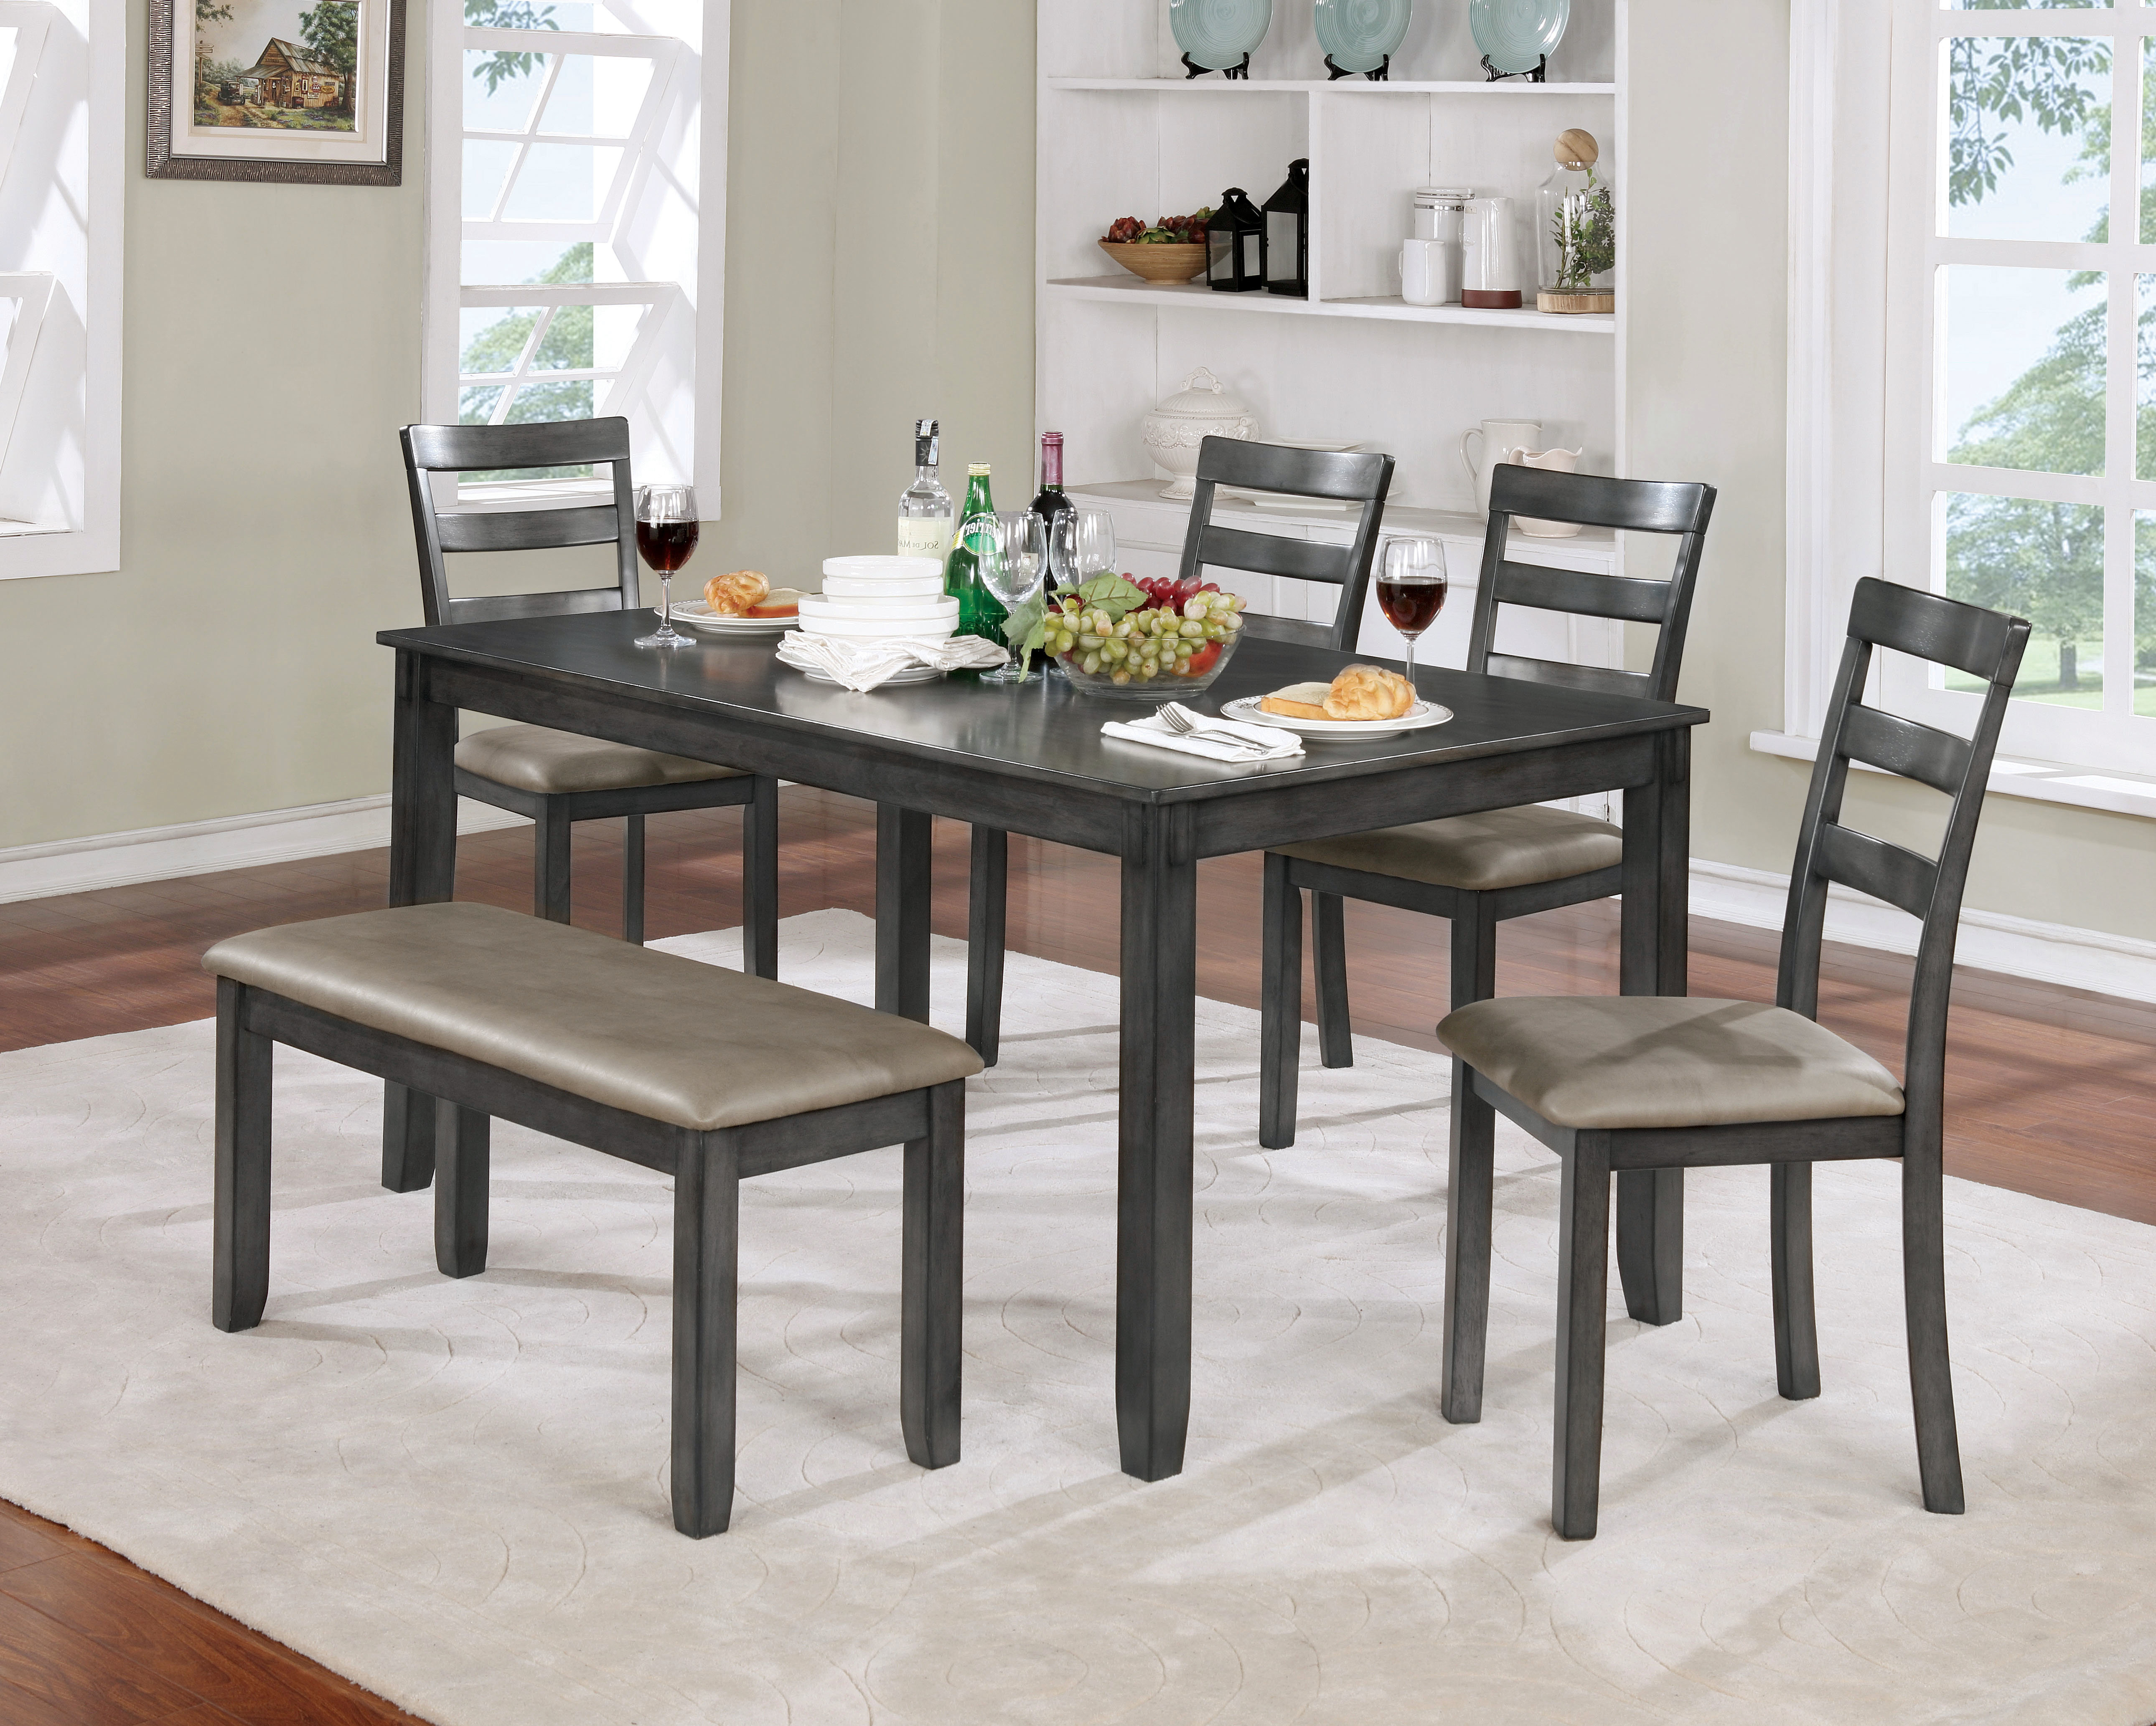 2017 Dawkins Dining Set With Regard To Hanska Wooden 5 Piece Counter Height Dining Table Sets (set Of 5) (Gallery 17 of 20)